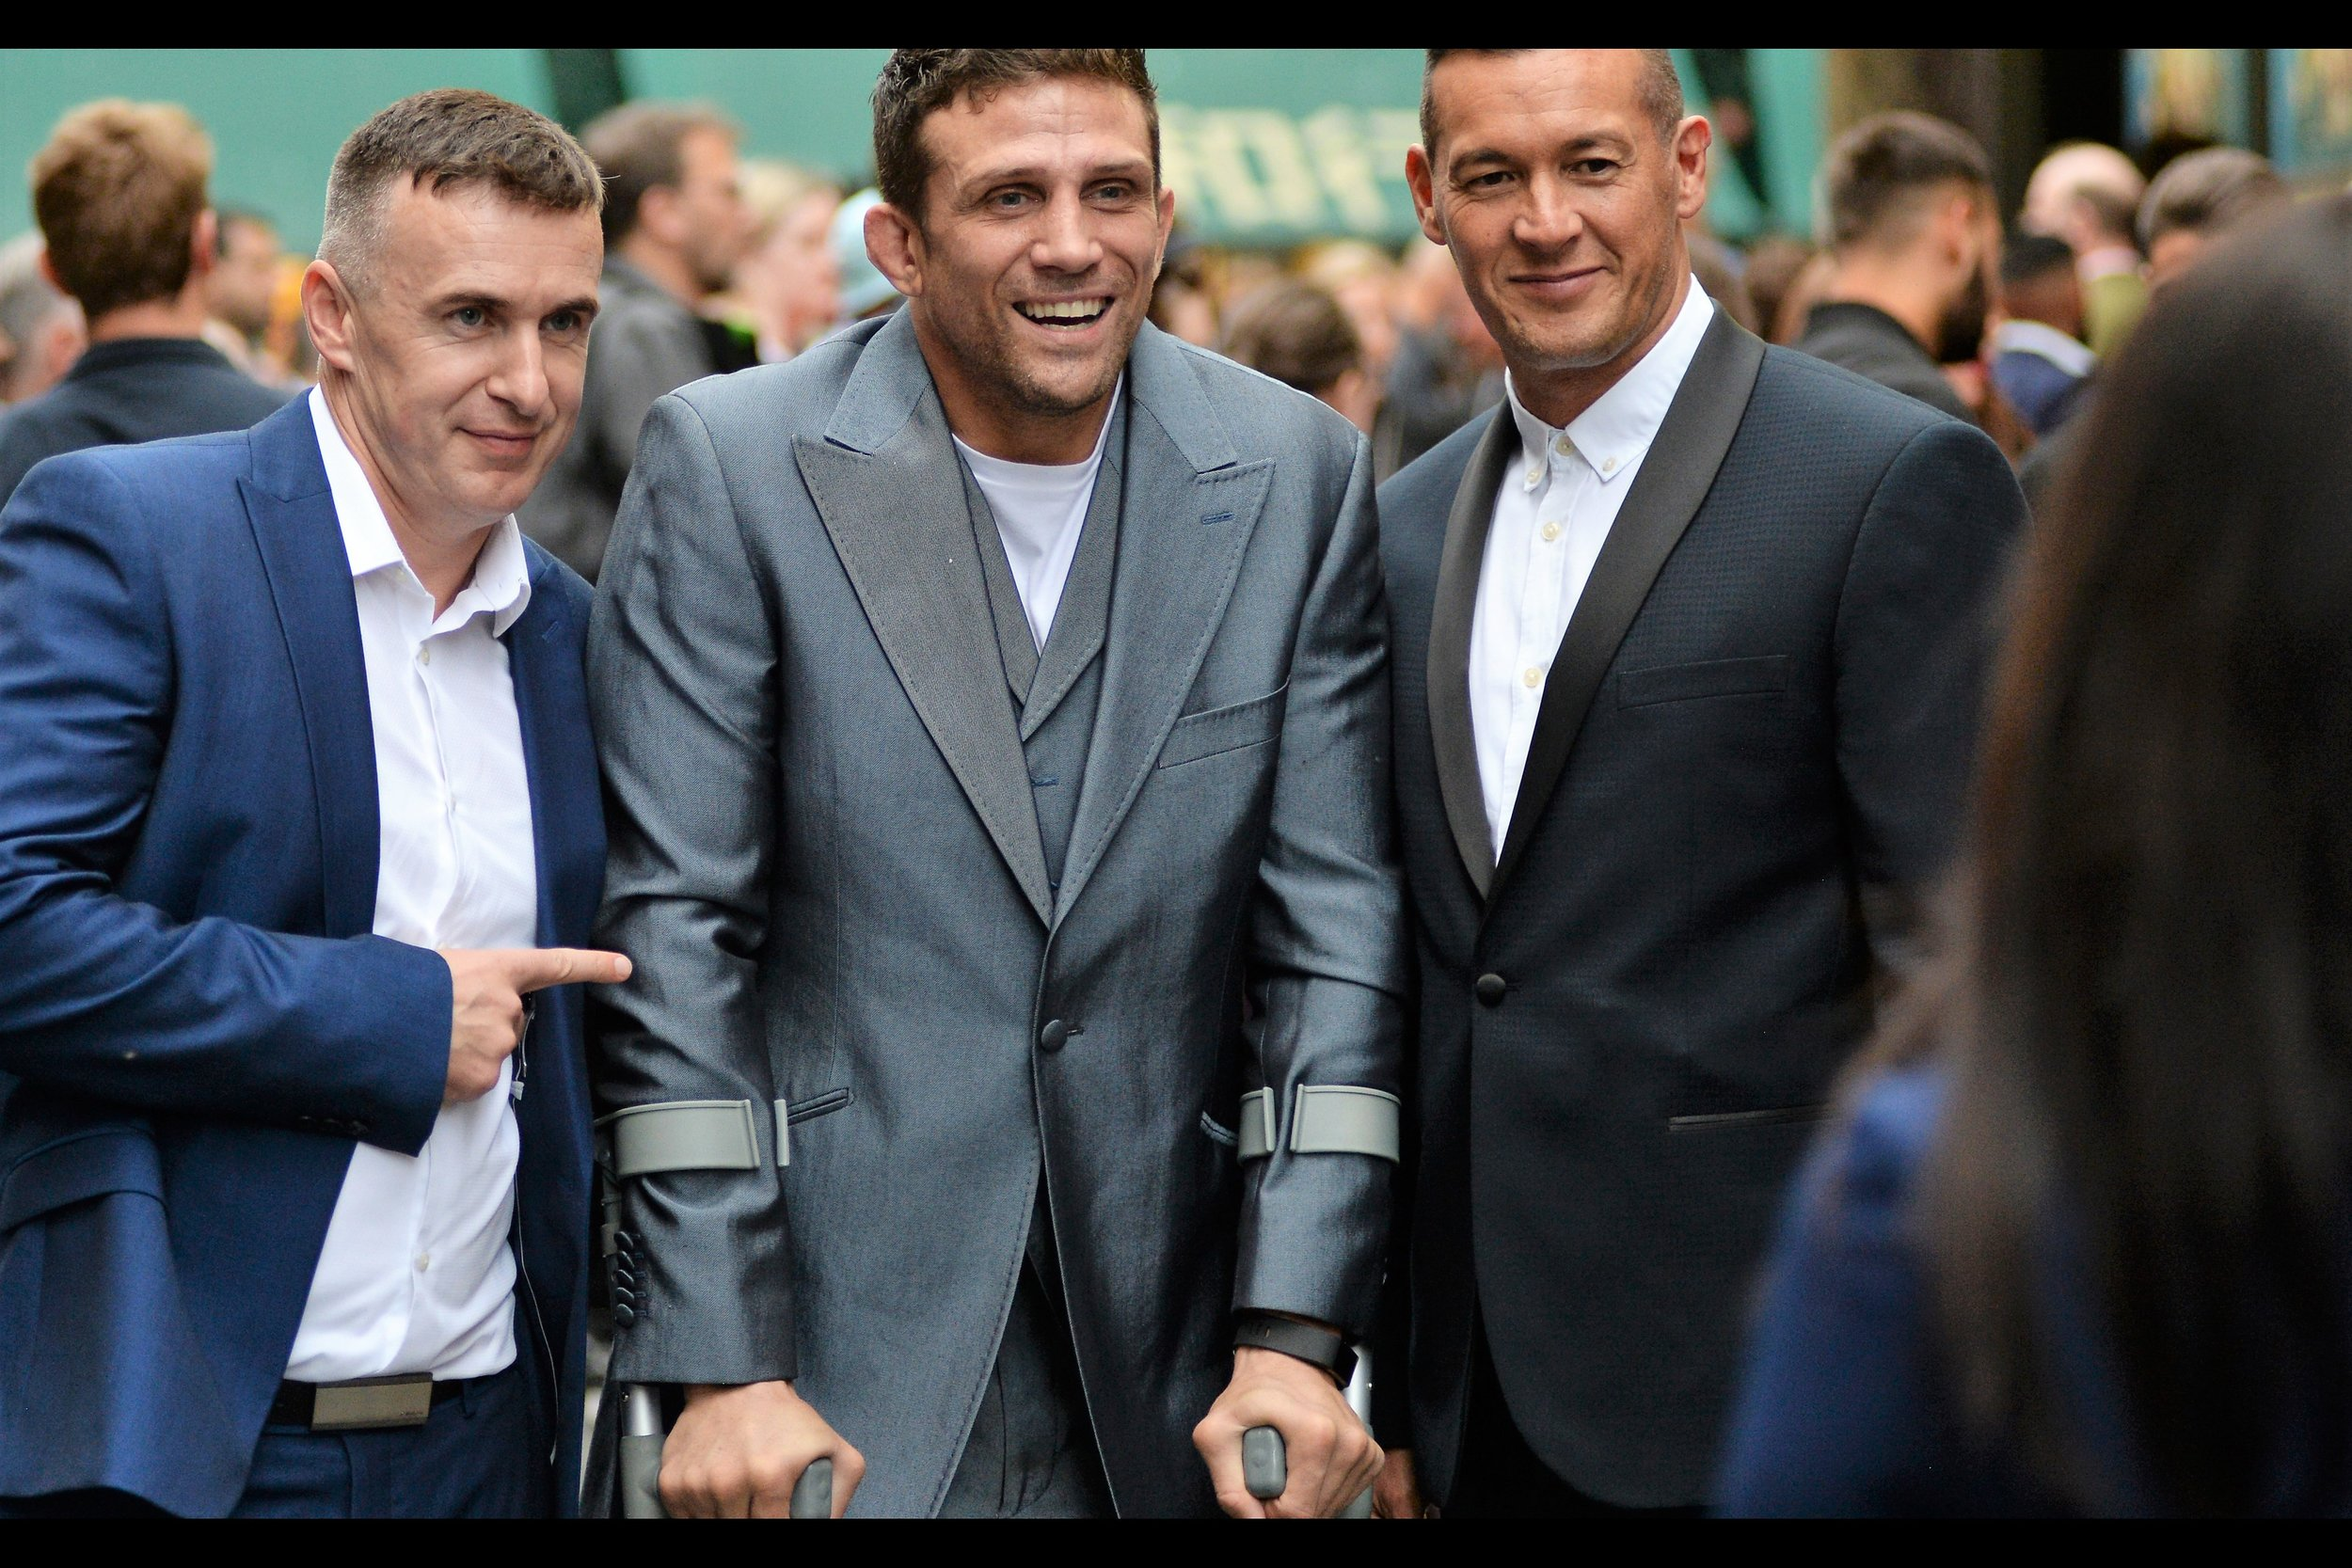 Alex Reid, the subject of the handshake, is a (former?) cage fighter. The crutches are not a result of the prior man's handshake and/or high-five. Or at least I don't think so?